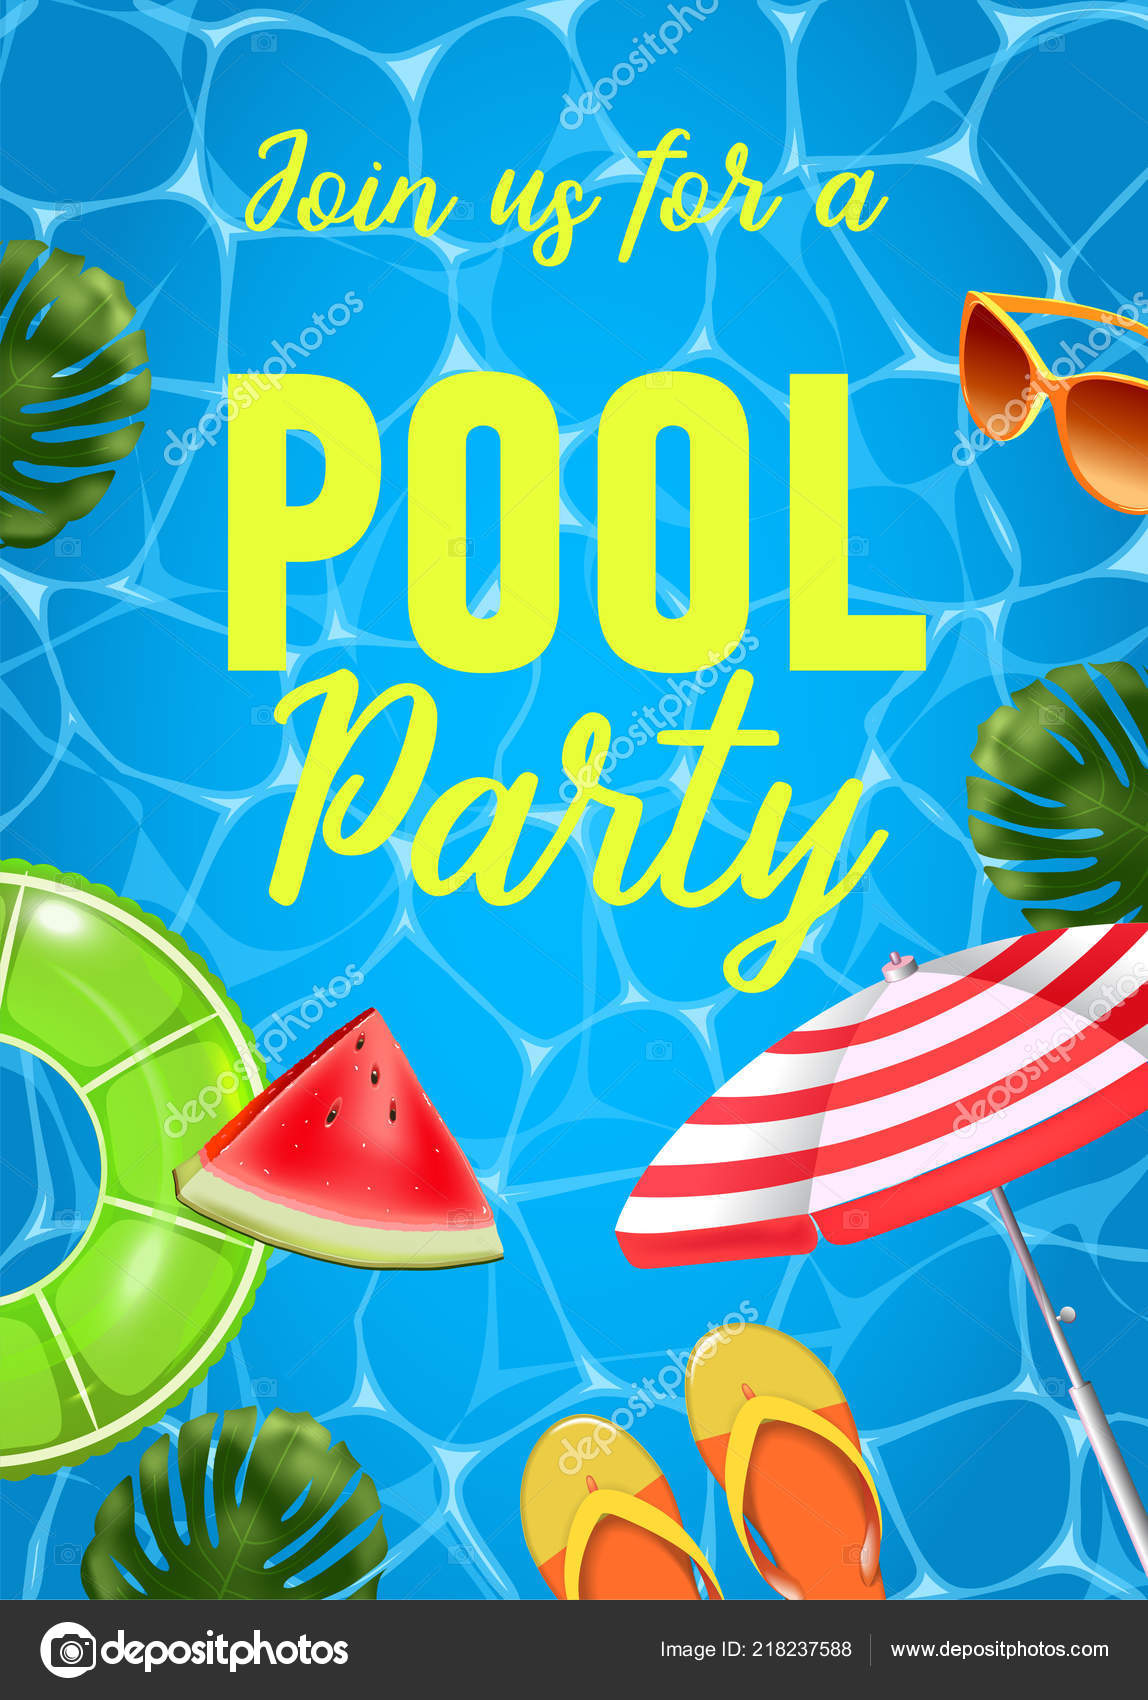 pool party invitation vector illustration top view of swimming pool